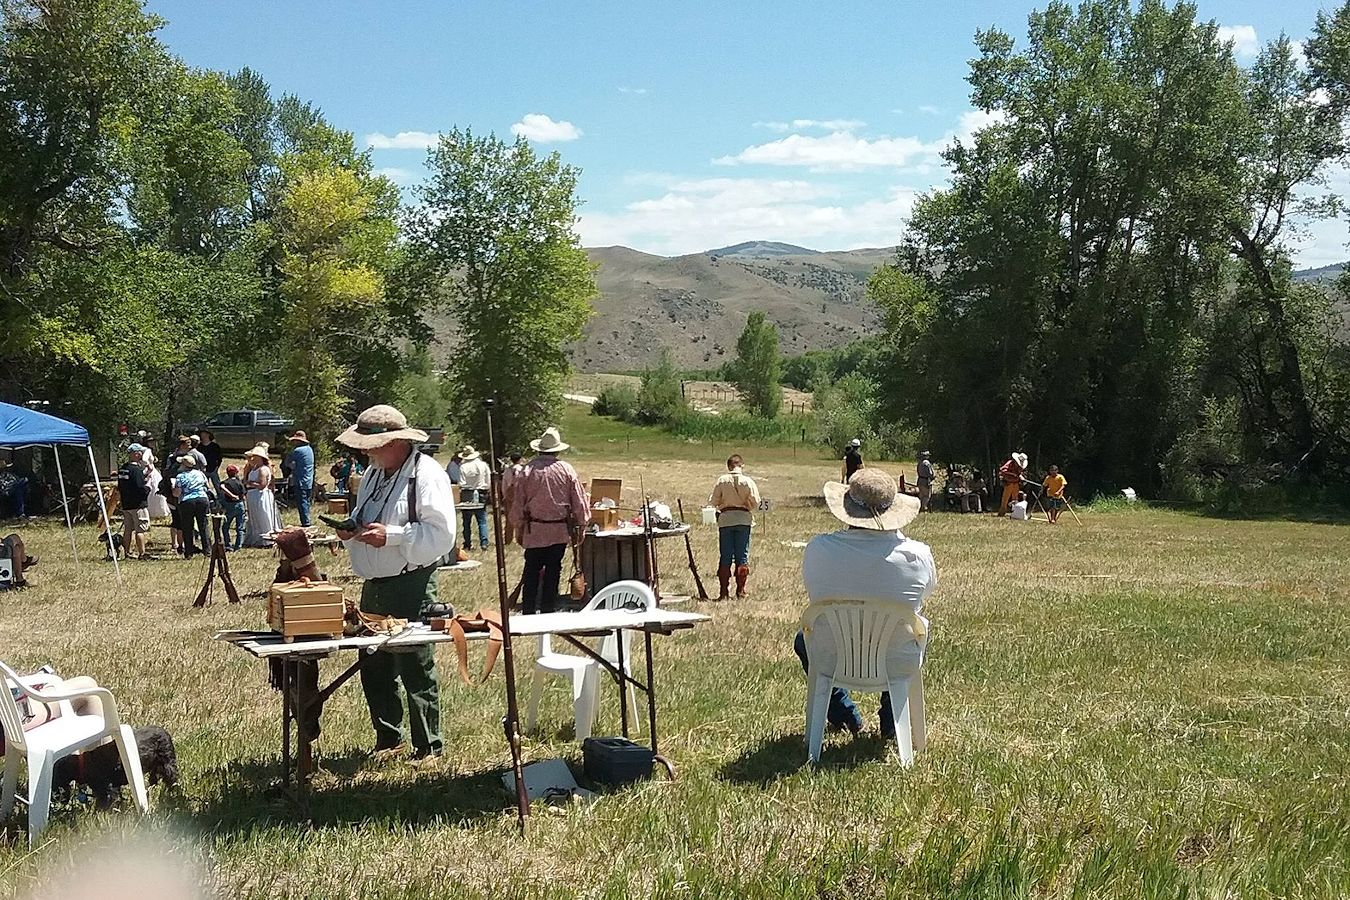 Sierra Madre Muzzle Loading Rifle Club Rendezvous